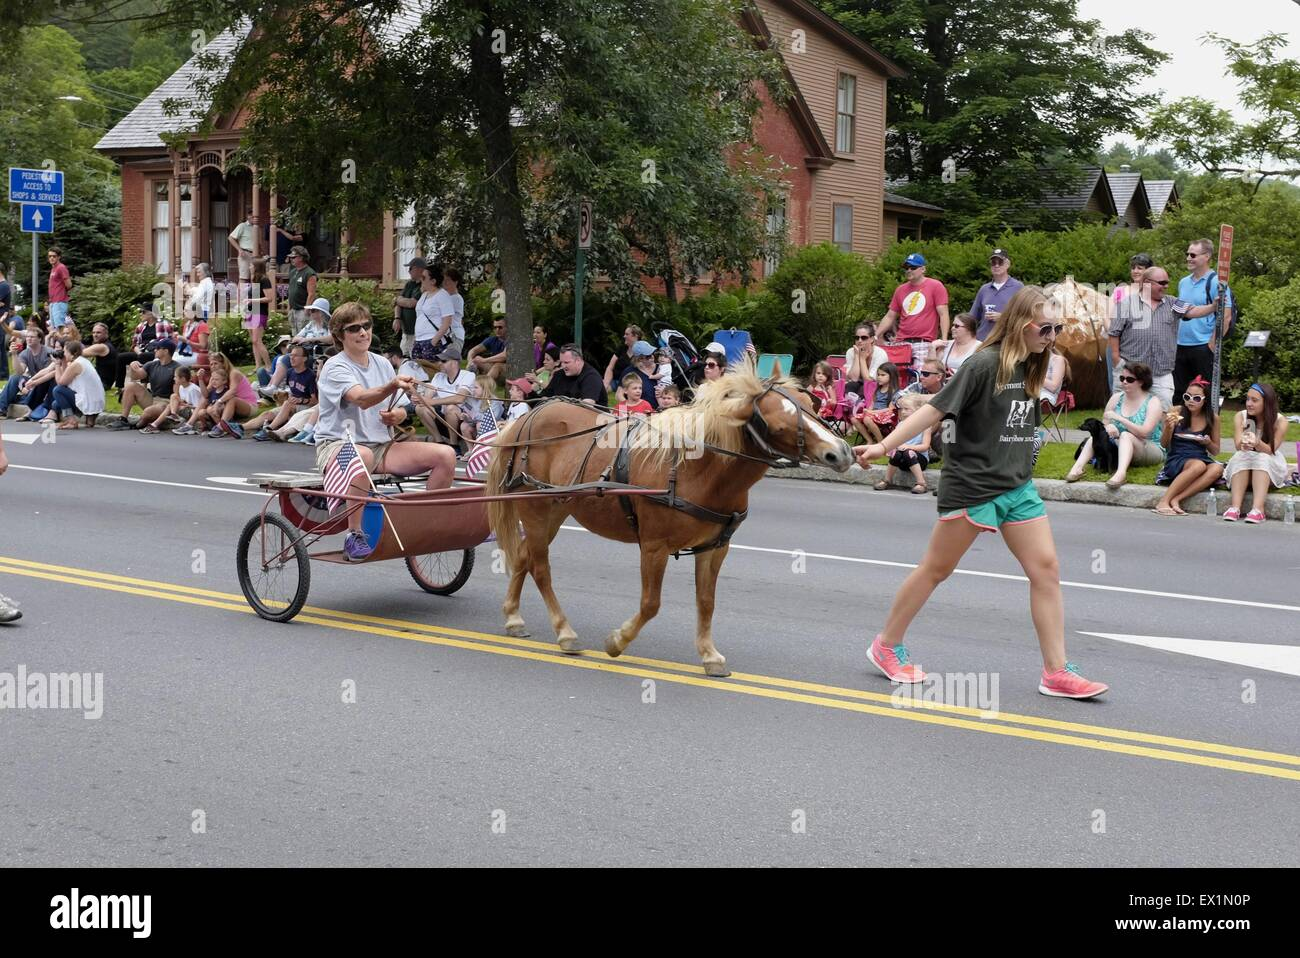 Small horse in Old Fashion 4th of July Celebration and Parade in Stowe, Vermont - Stock Image